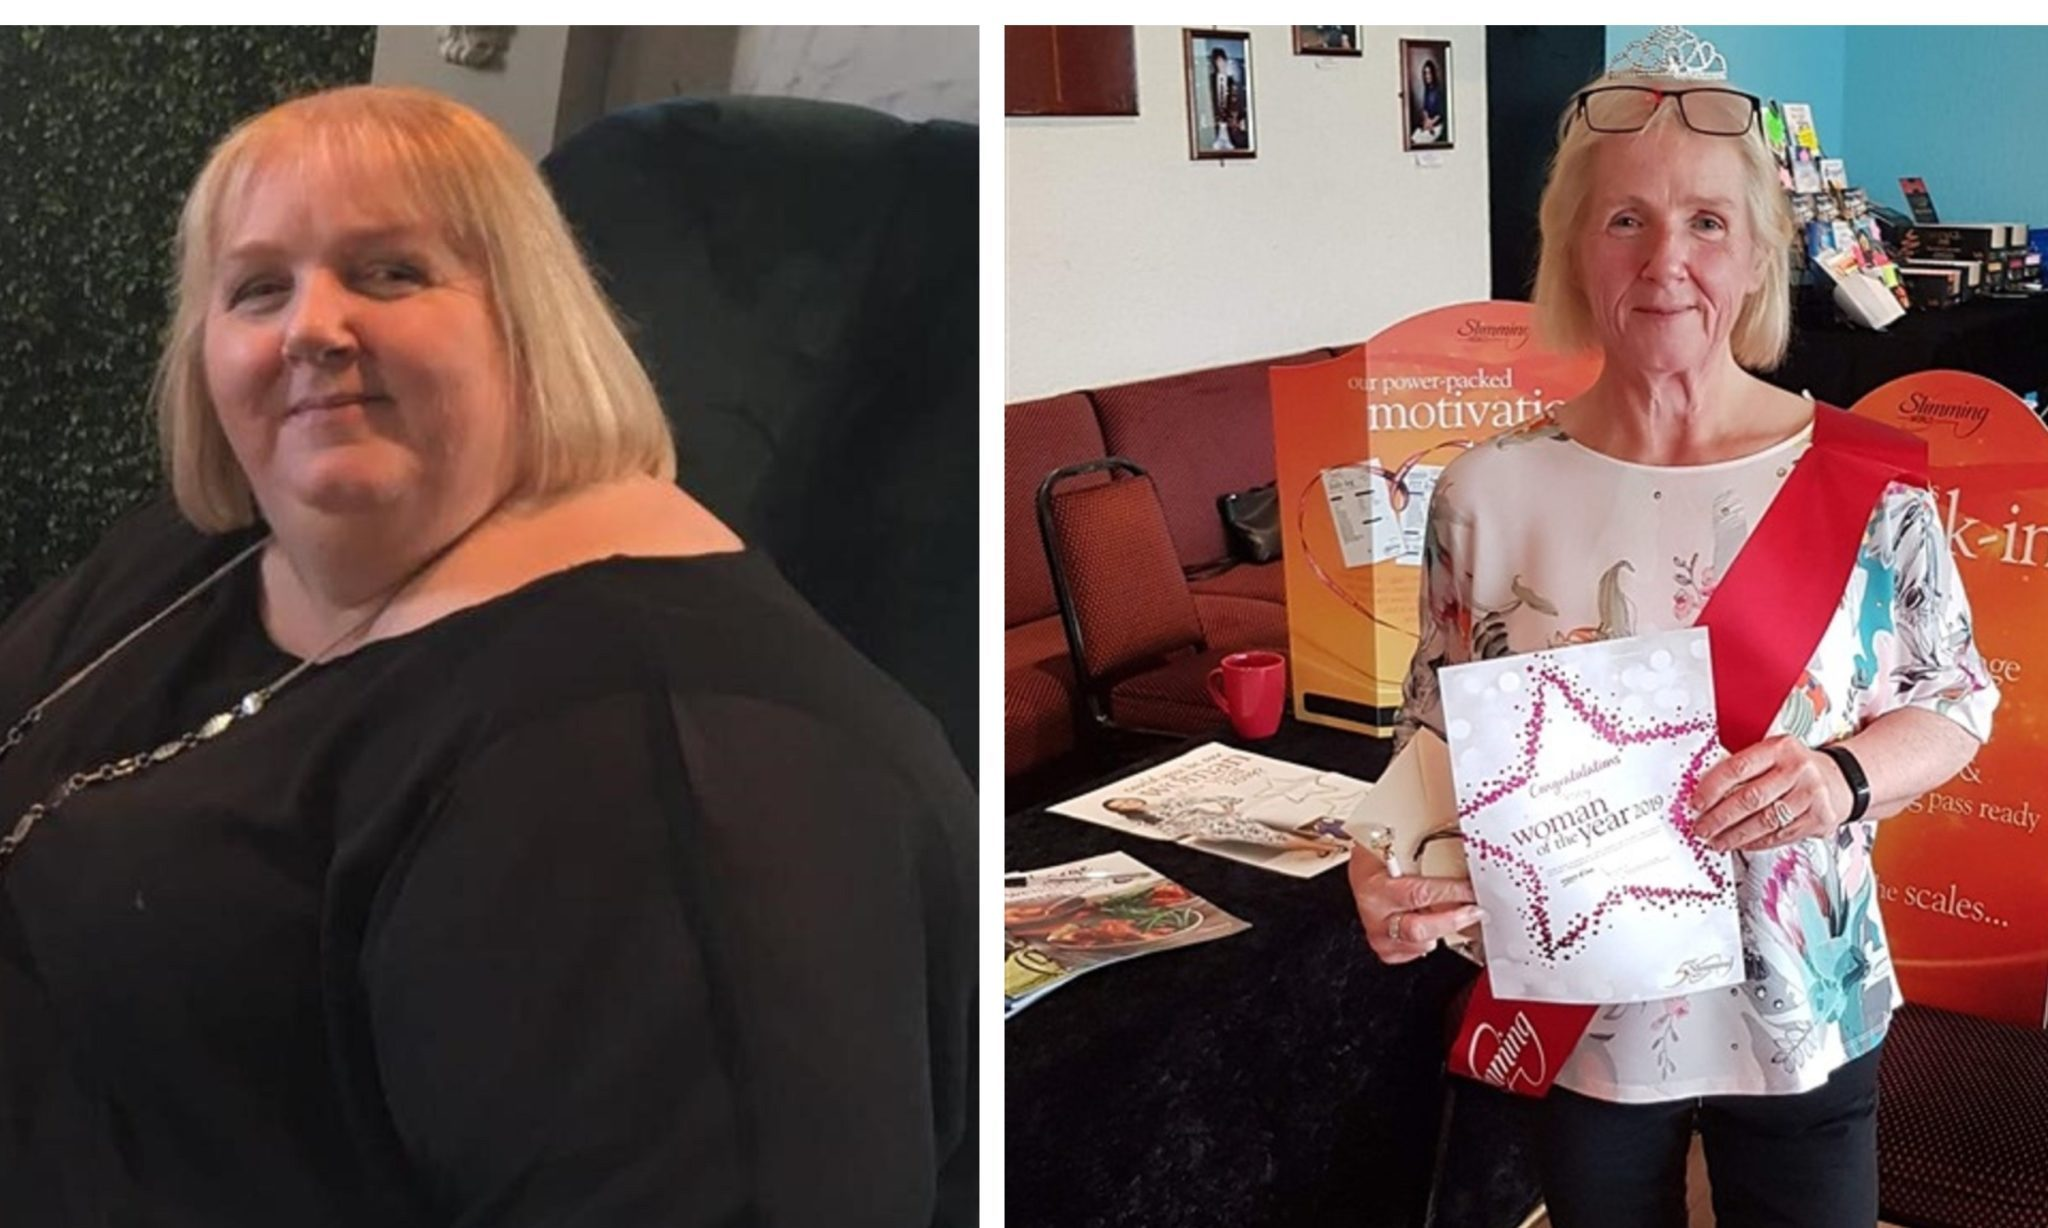 A before and after picture showing how Tracy has managed to turn her life around.